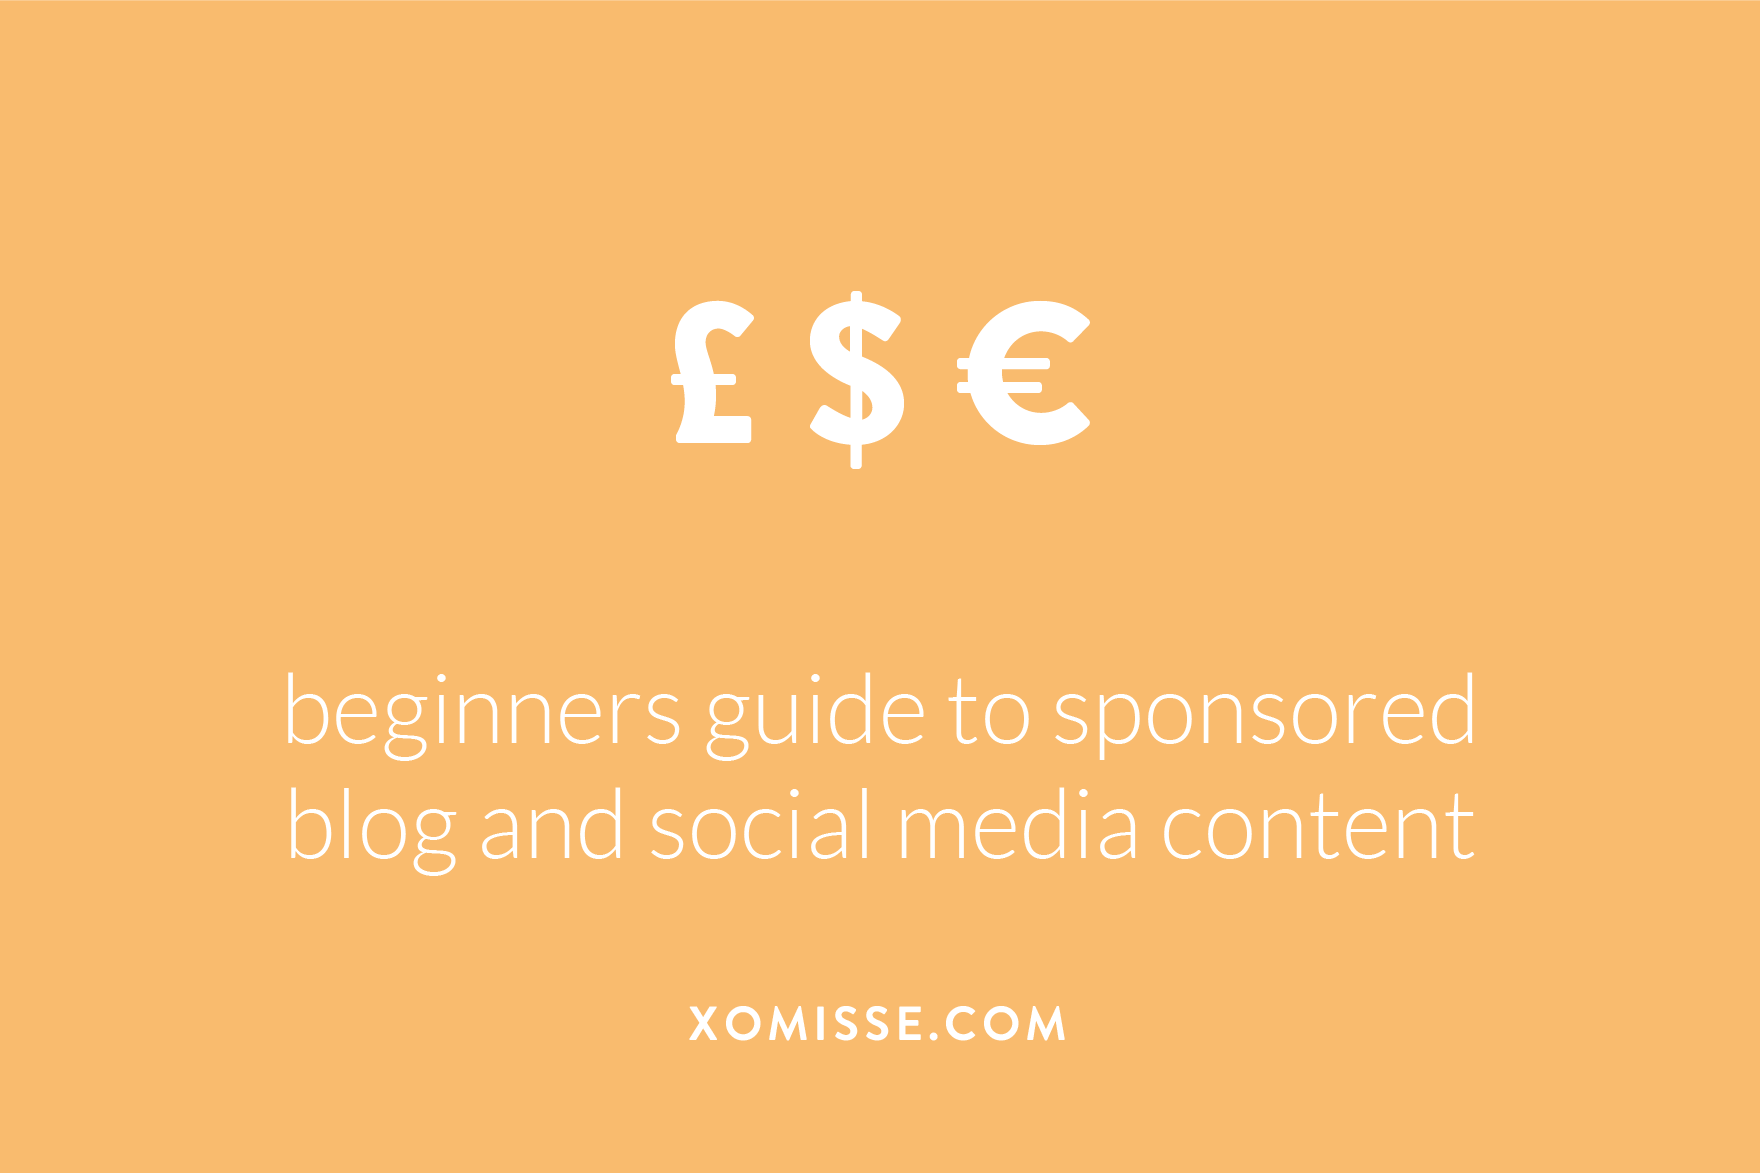 Want to write sponsored posts on your blog? Here's a guide to what sponsored content is, how it works, how to legally publish sponsored posts and how much to charge?